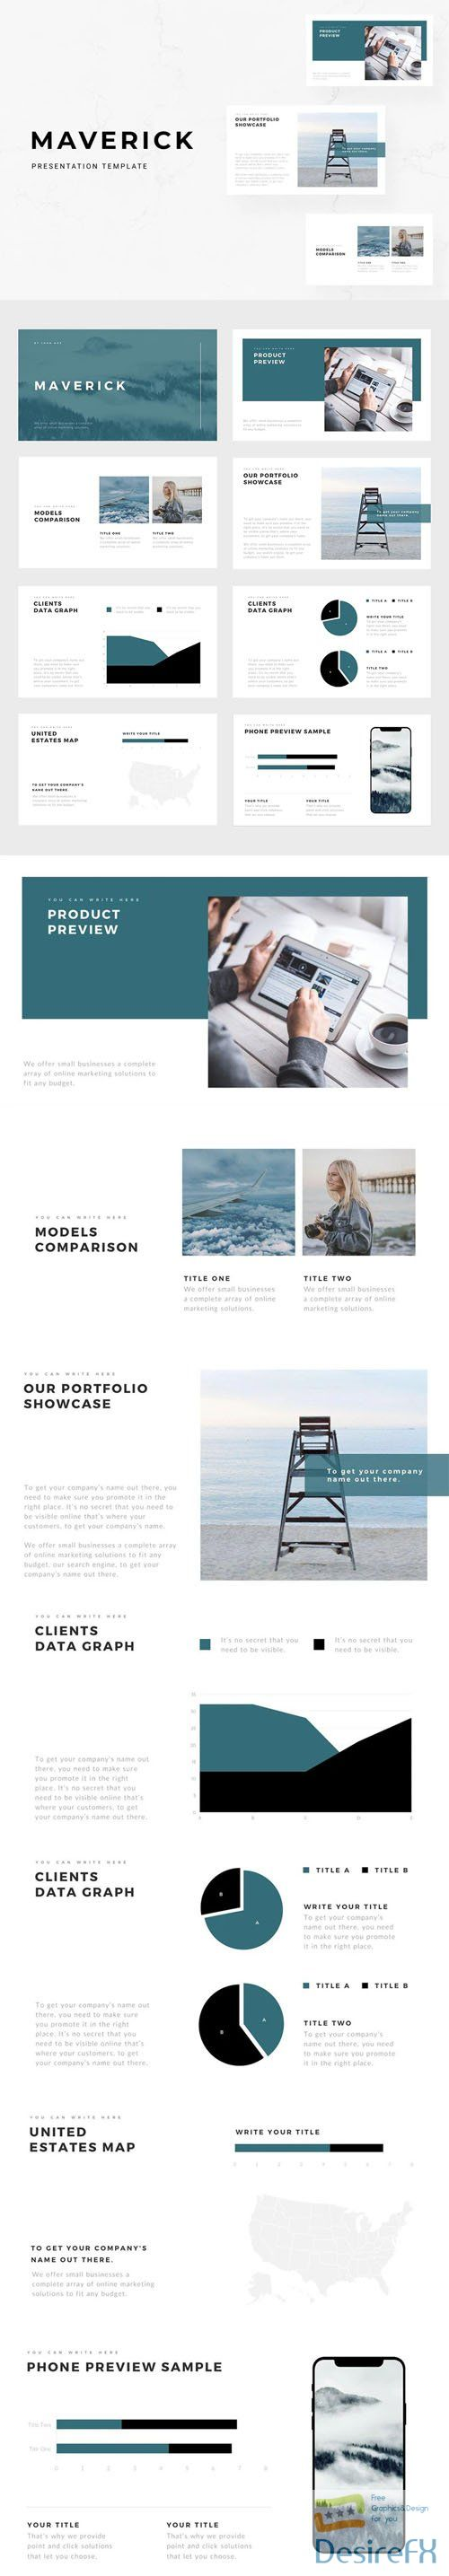 Maverick Minimal Presentation PPTX/KEY Template